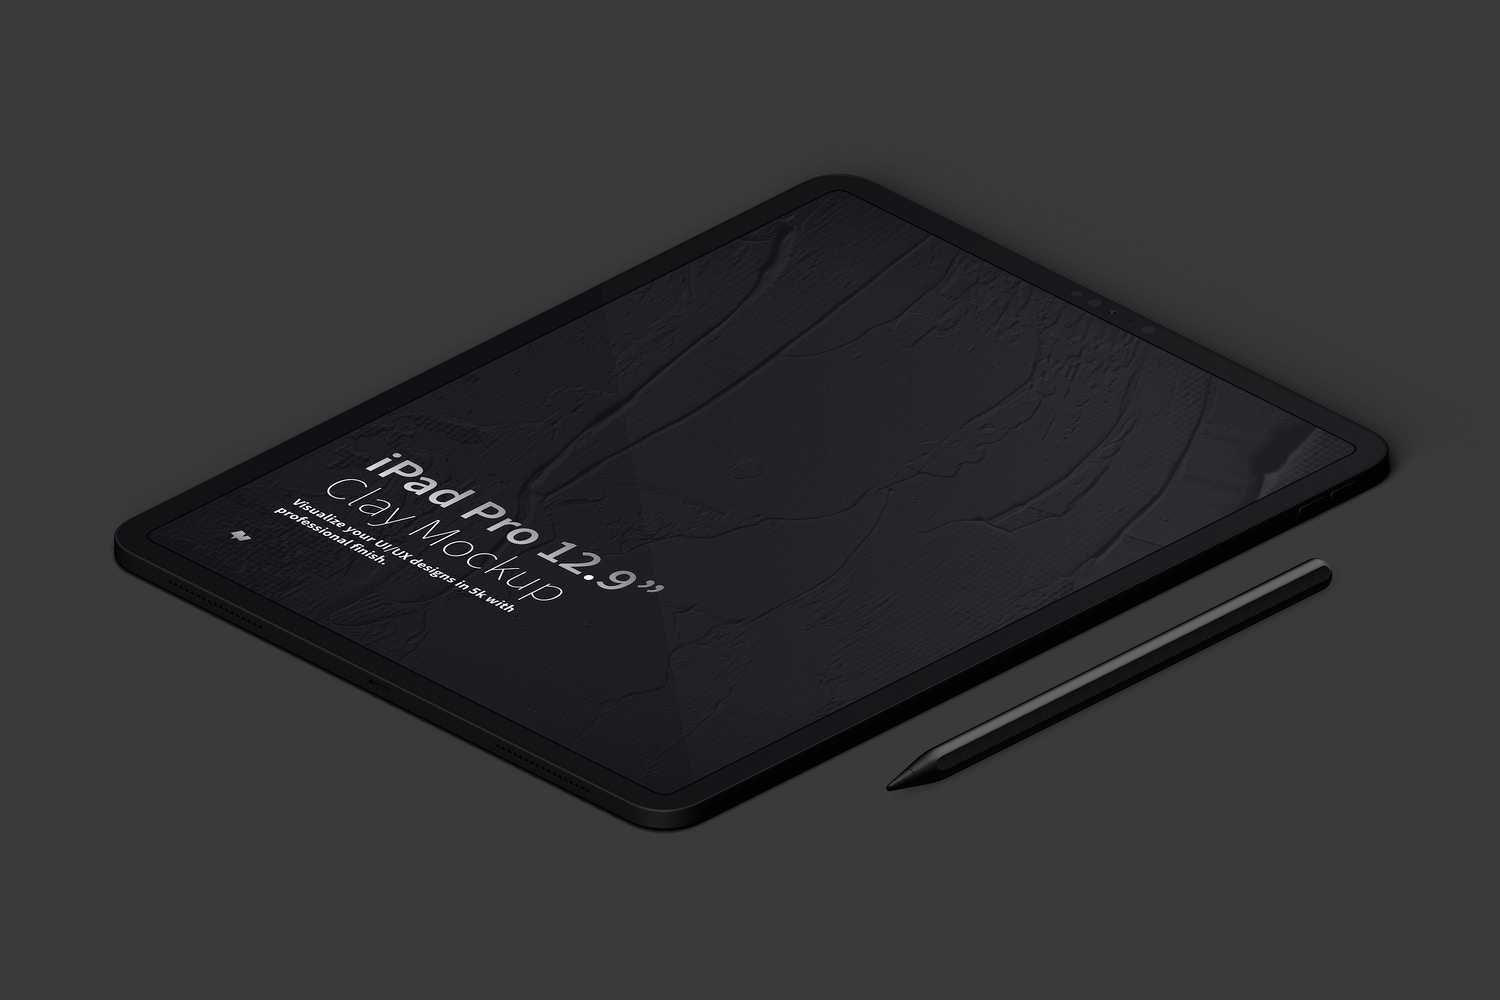 """Clay iPad Pro 12.9"""" Mockup, Isometric Right View (5) by Original Mockups on Original Mockups"""